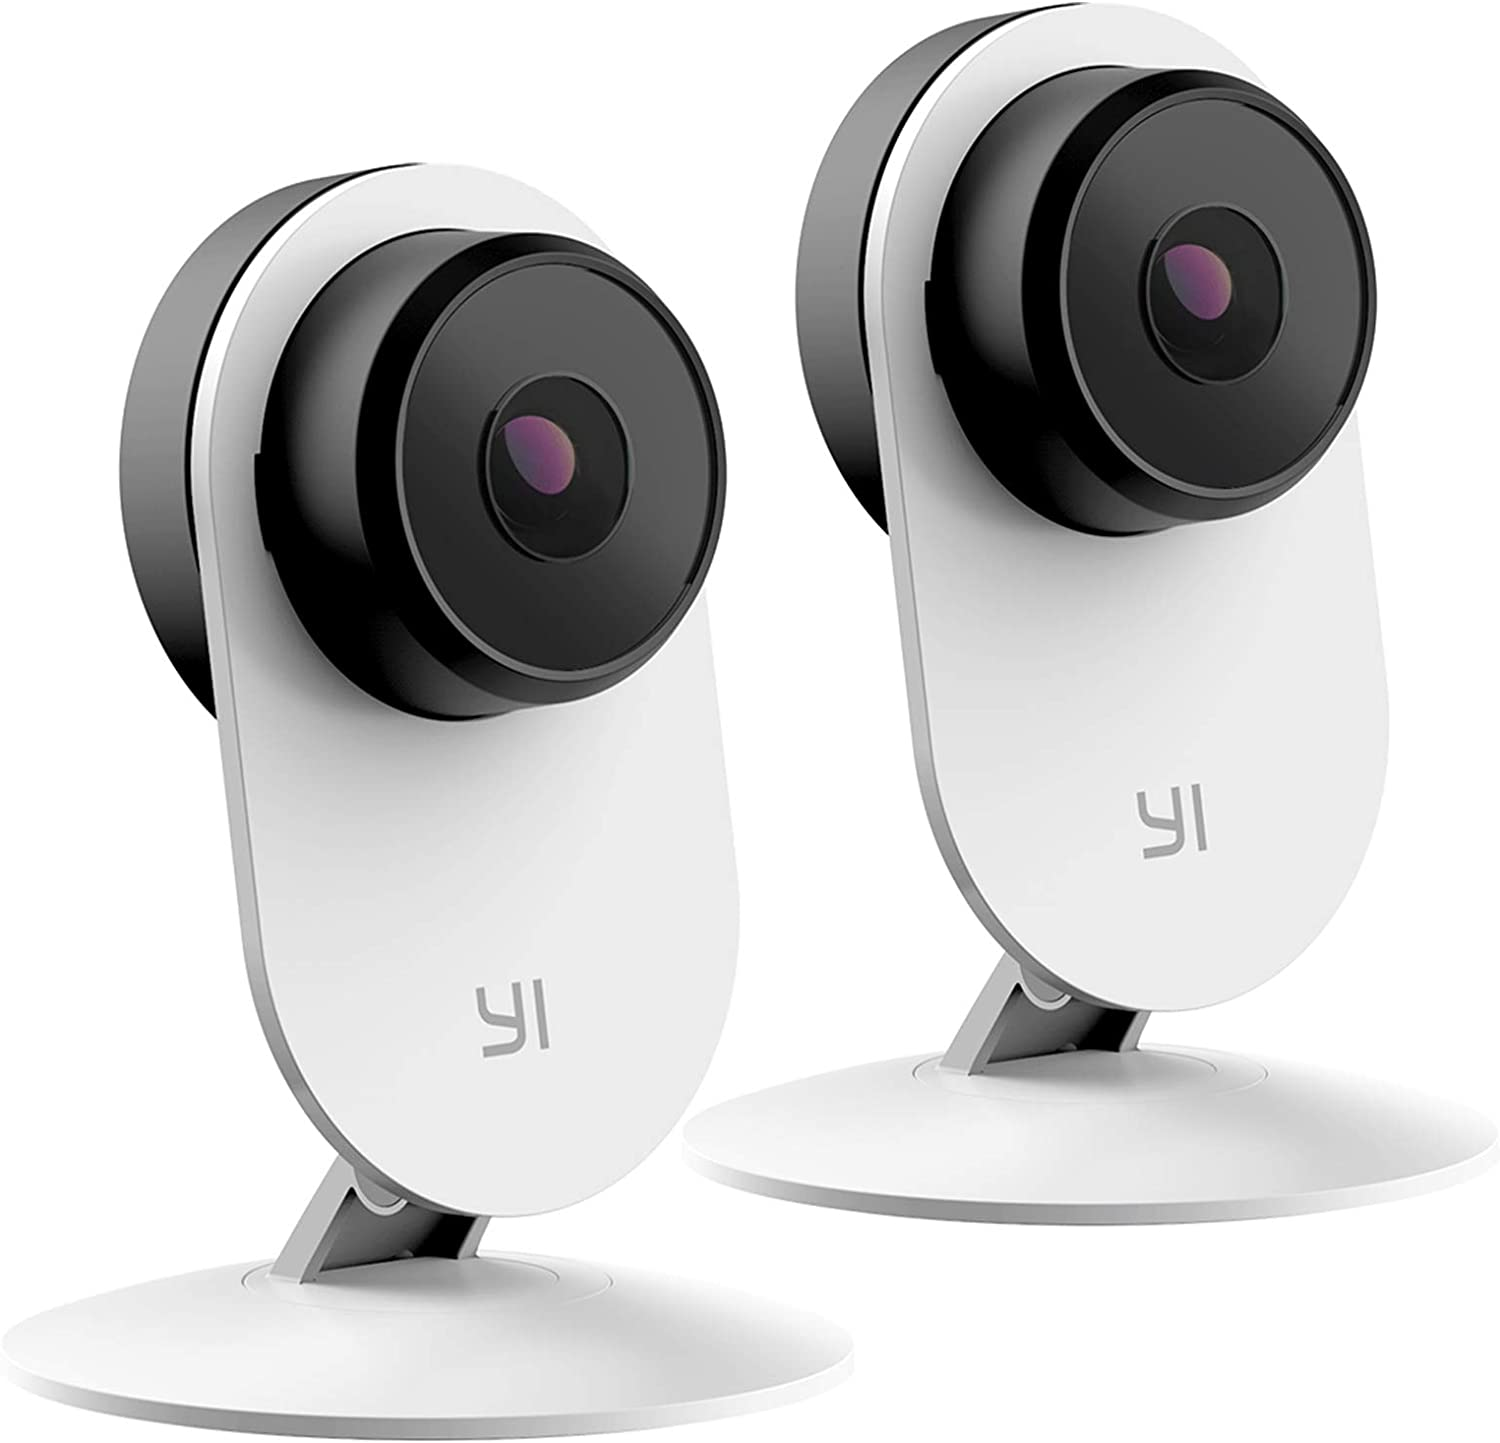 YI 2pc Smart Home Camera 3, AI-Powered 1080p Security Camera System IP Cam with 24/7 Emergency Response, Human Detection, Sound Analystics, Night Vision, 2.4G Wi-Fi, App for Nanny Monitor